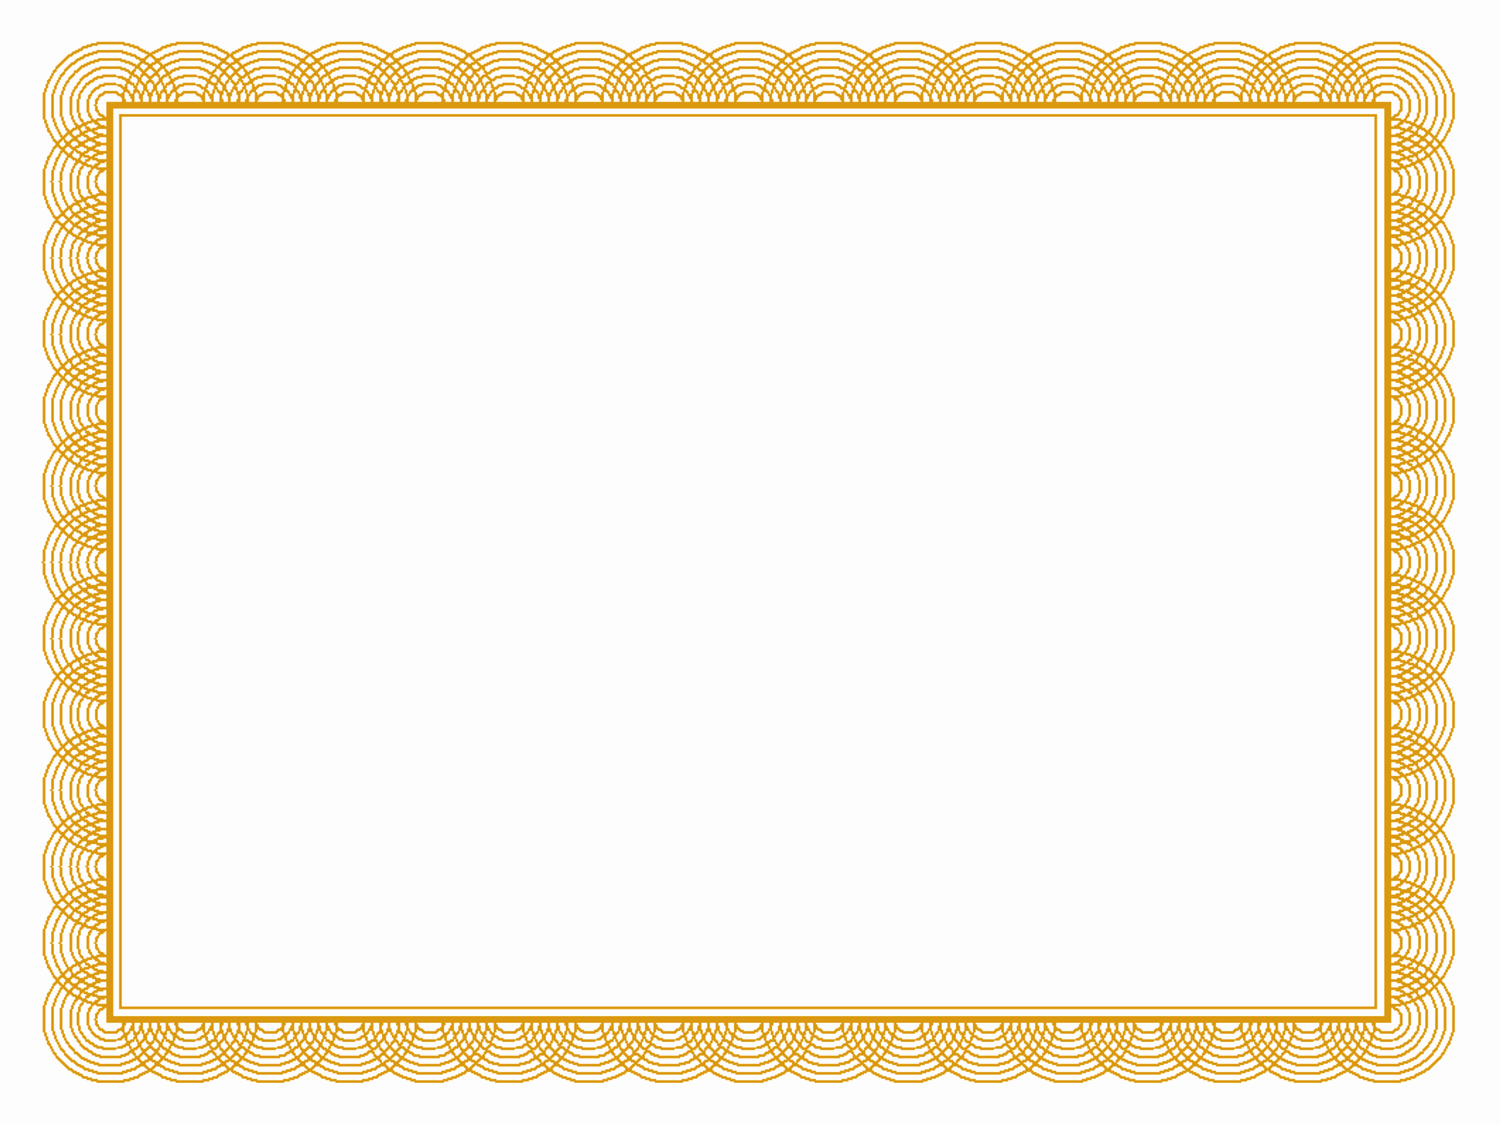 Free Gold Border Templates Lovely Certificate Of Pletion Diploma Design Template